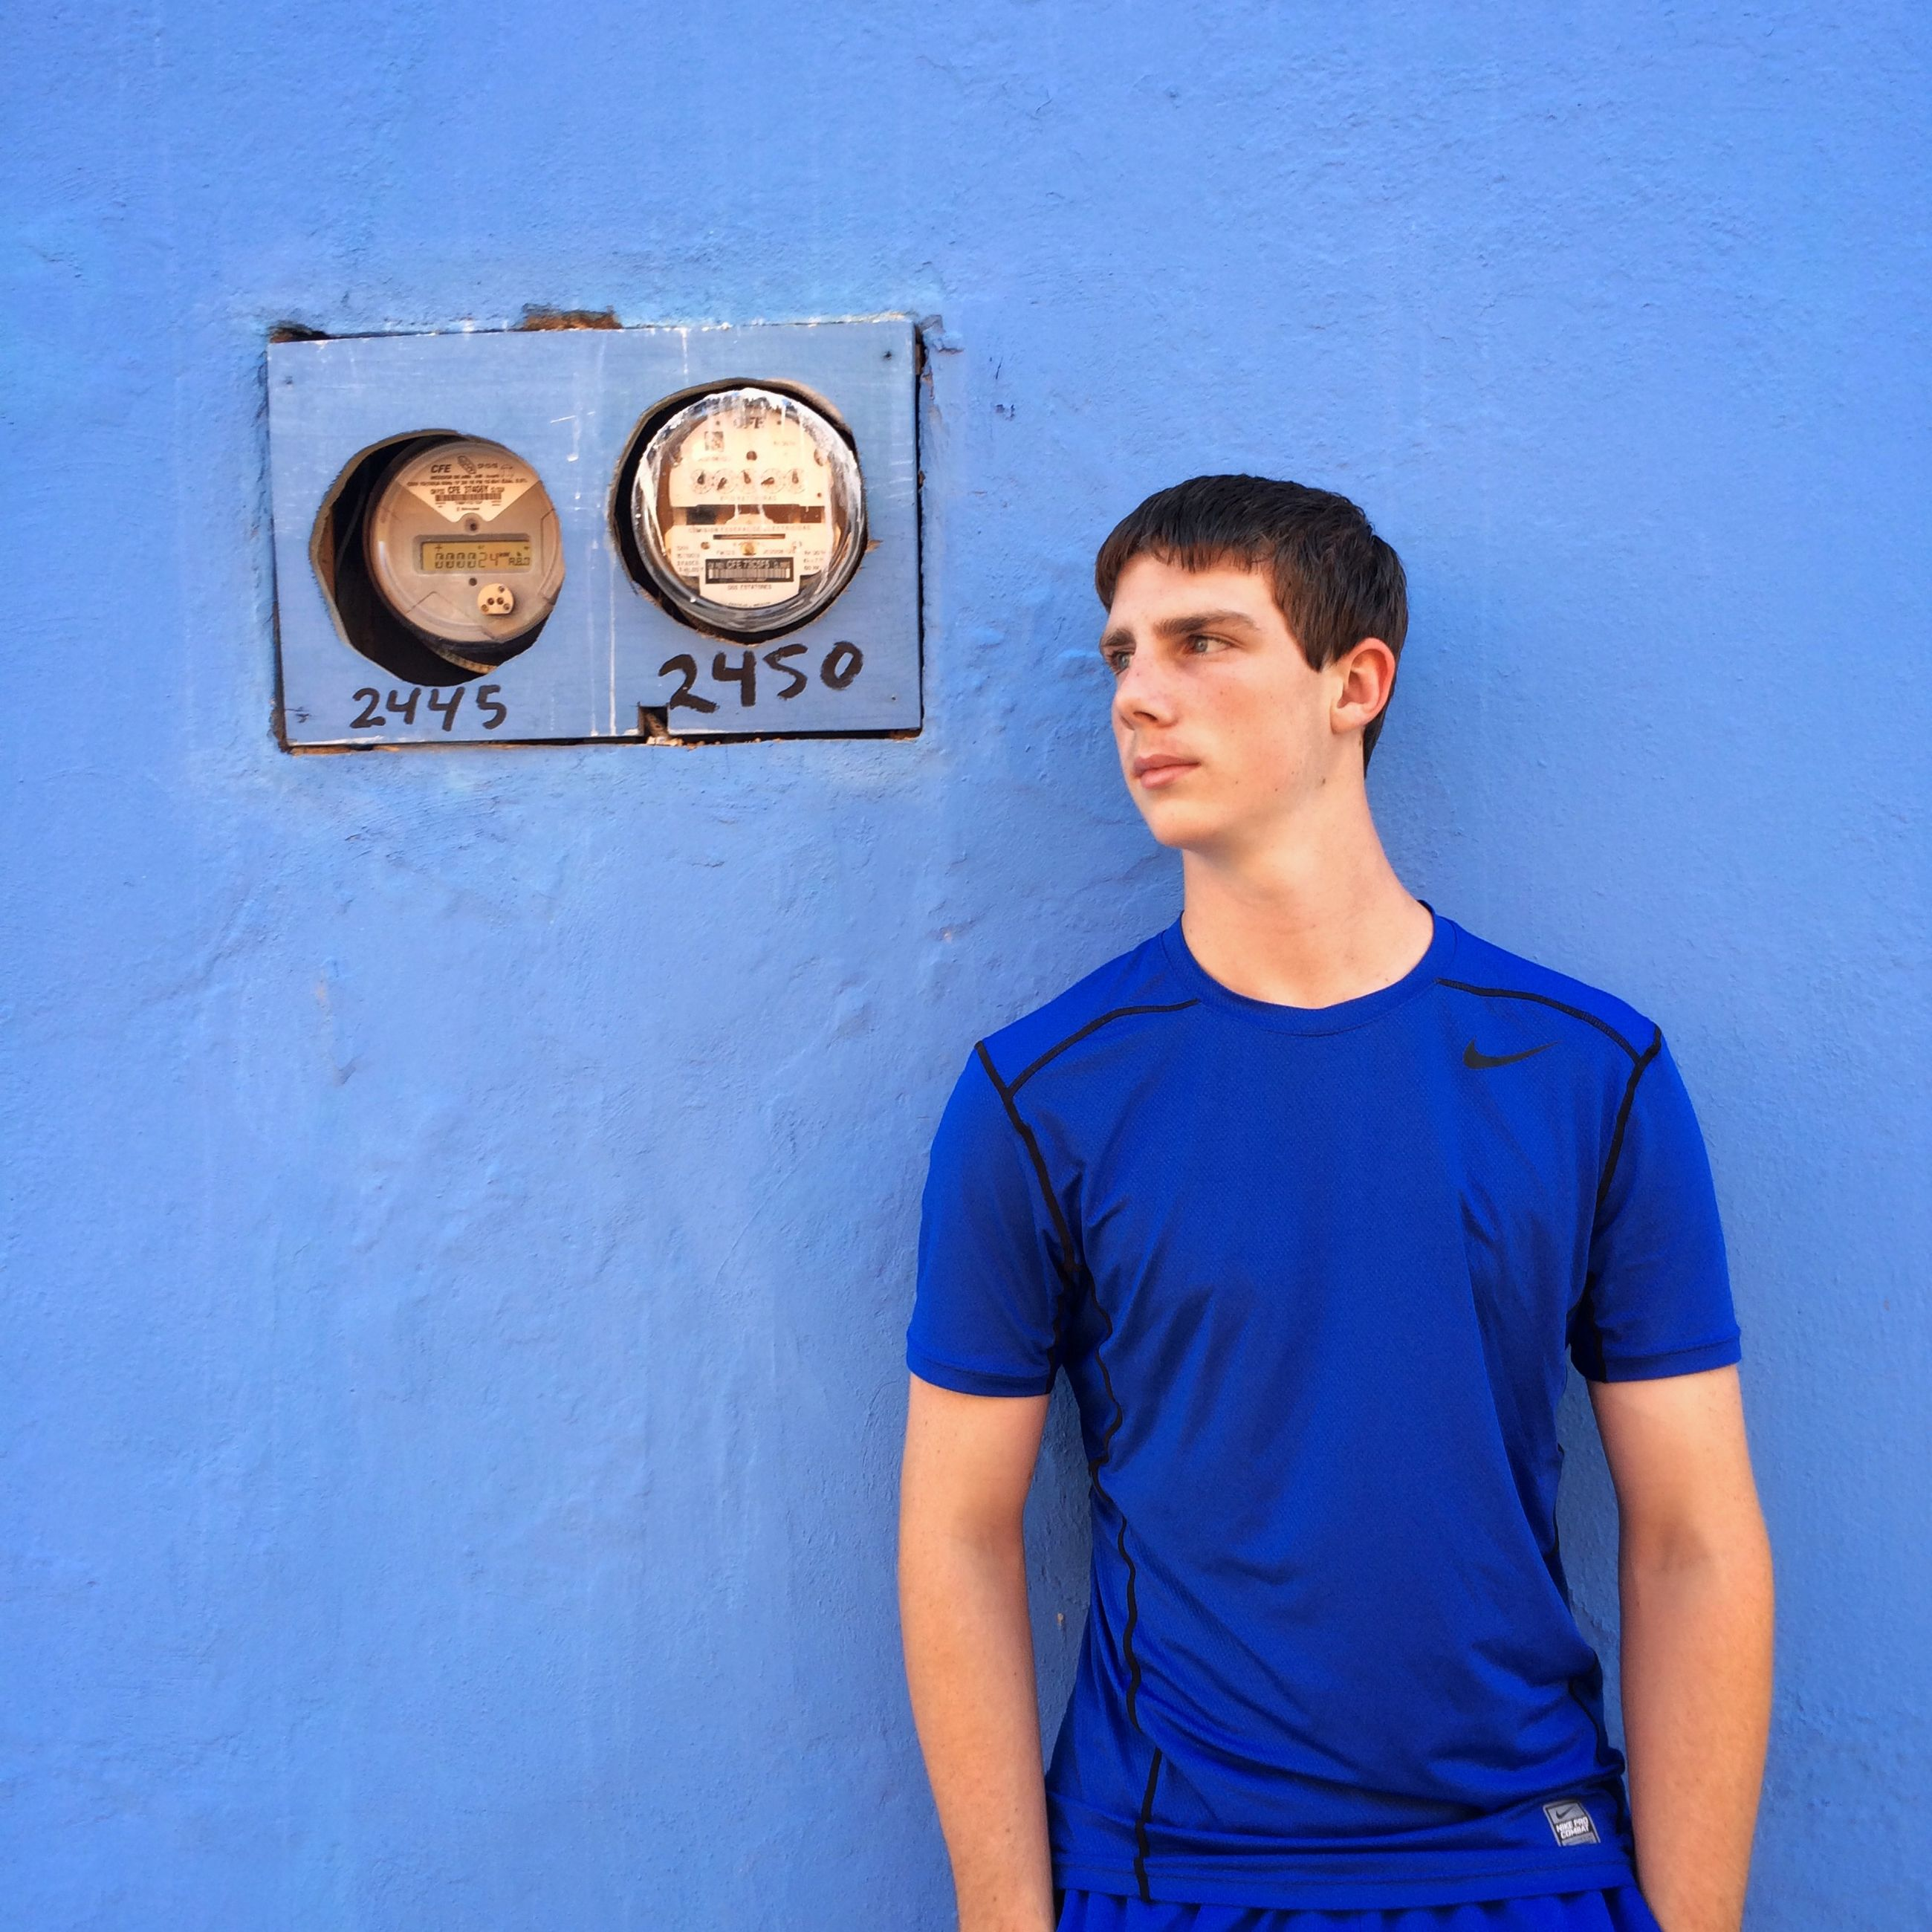 casual clothing, young men, communication, standing, waist up, lifestyles, front view, young adult, wall - building feature, leisure activity, person, three quarter length, portrait, text, blue, copy space, technology, looking at camera